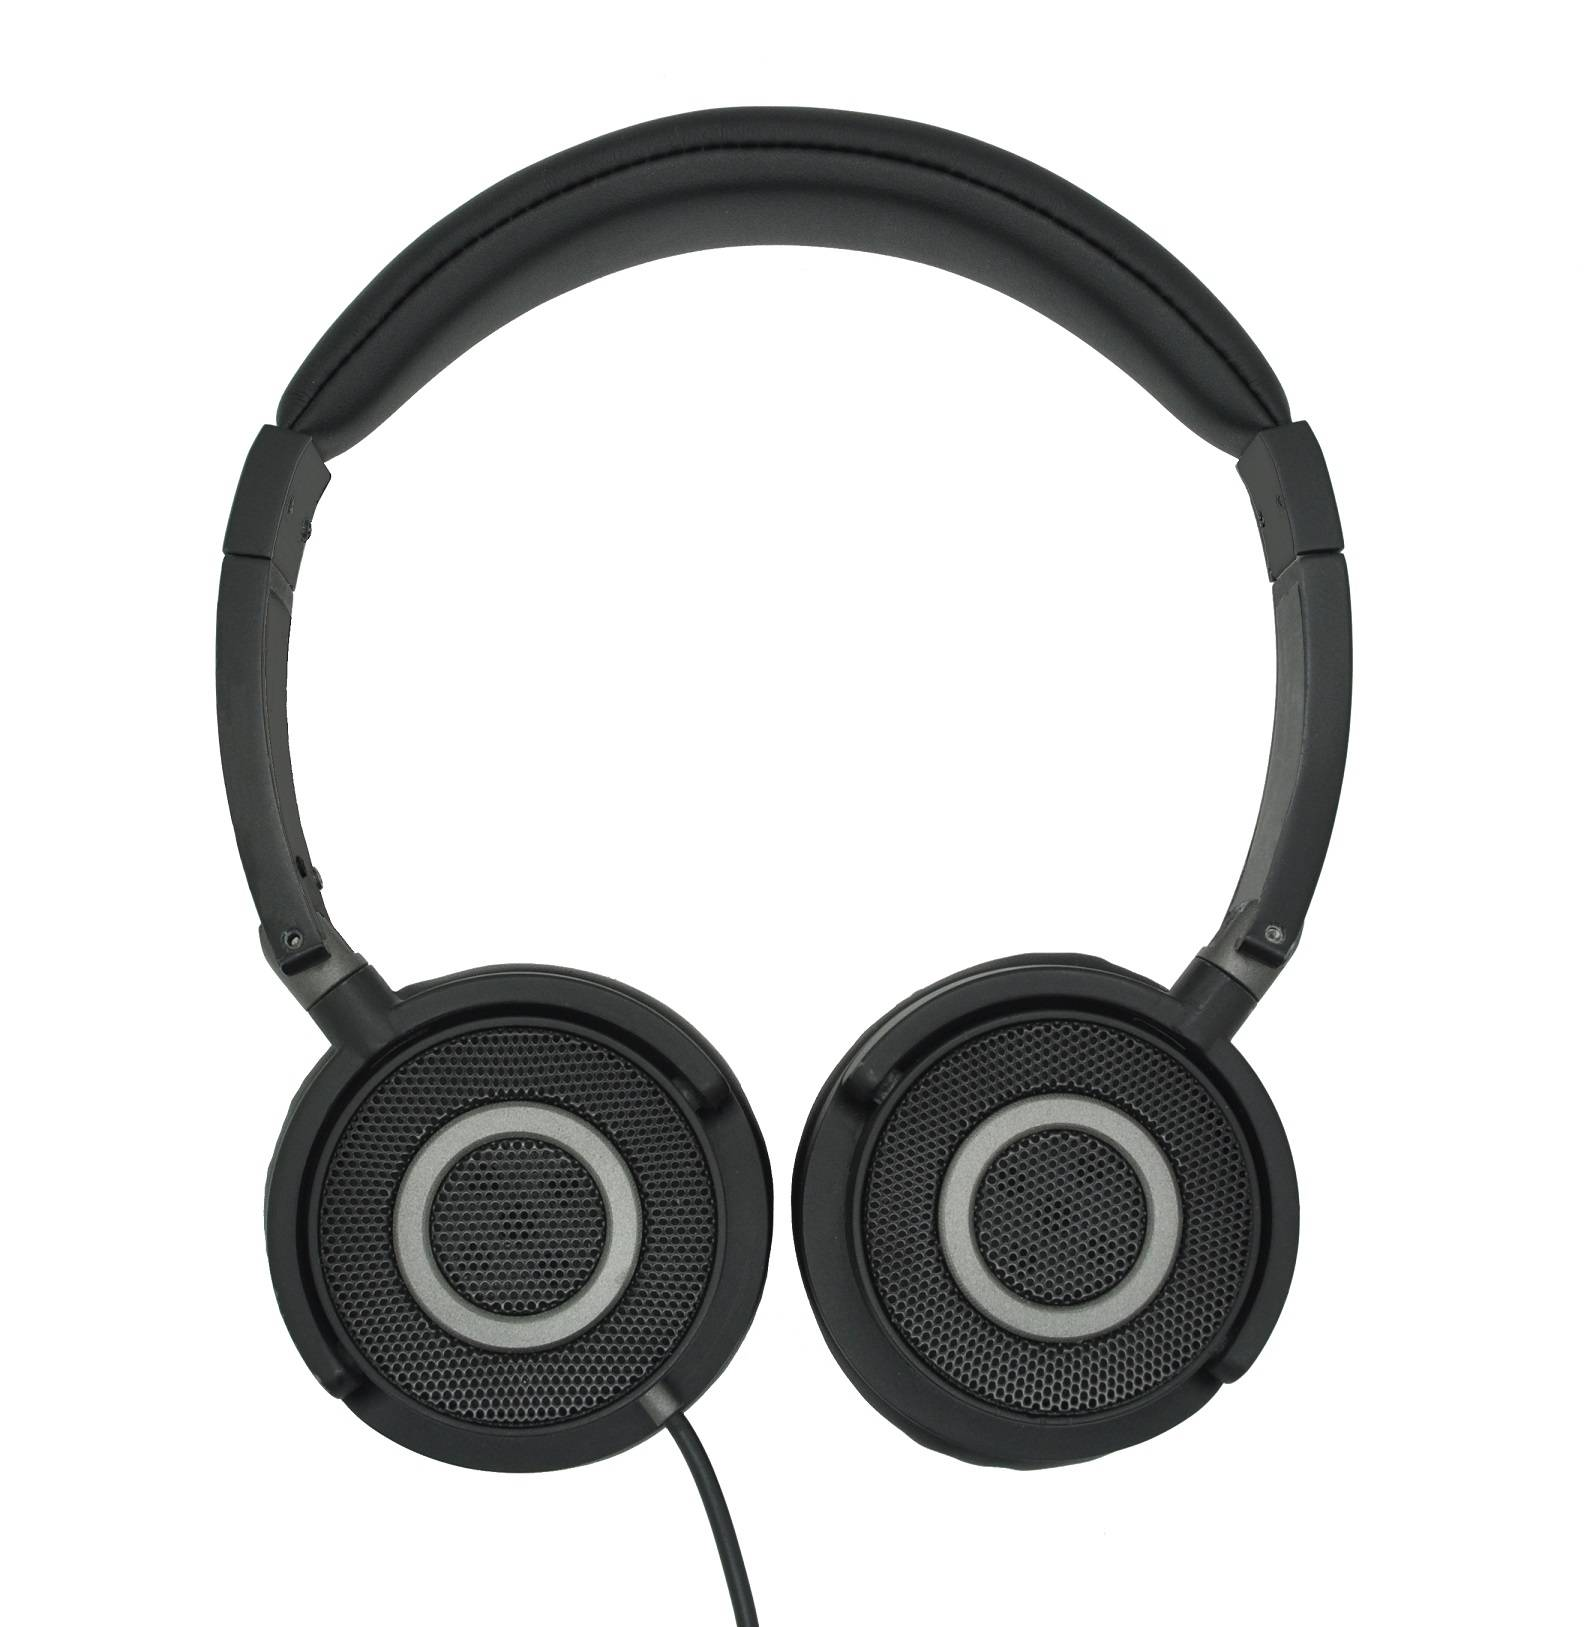 Middle size headphone JOY-1821